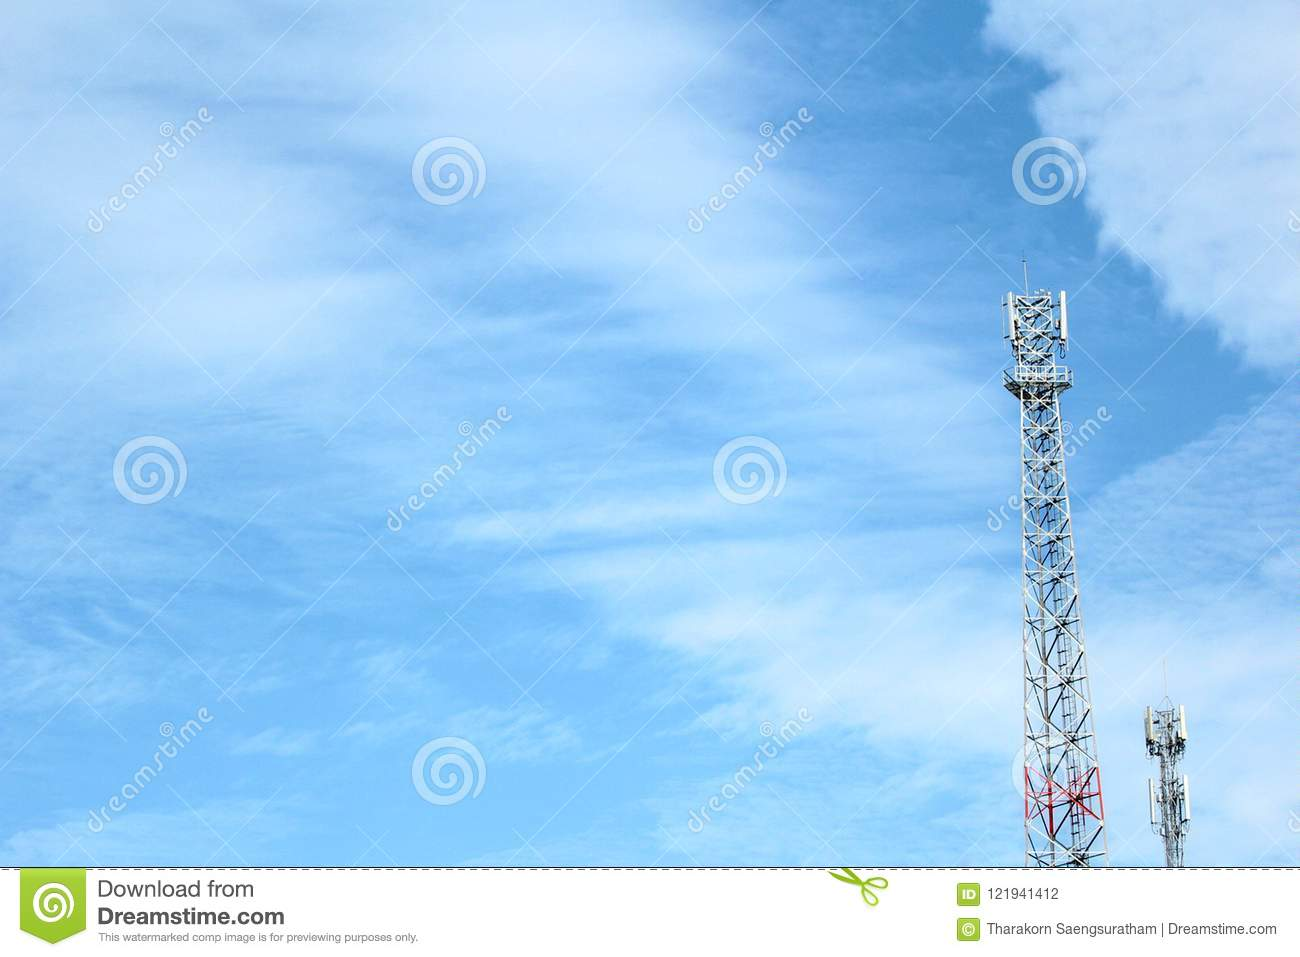 Free cell phone signal booster download